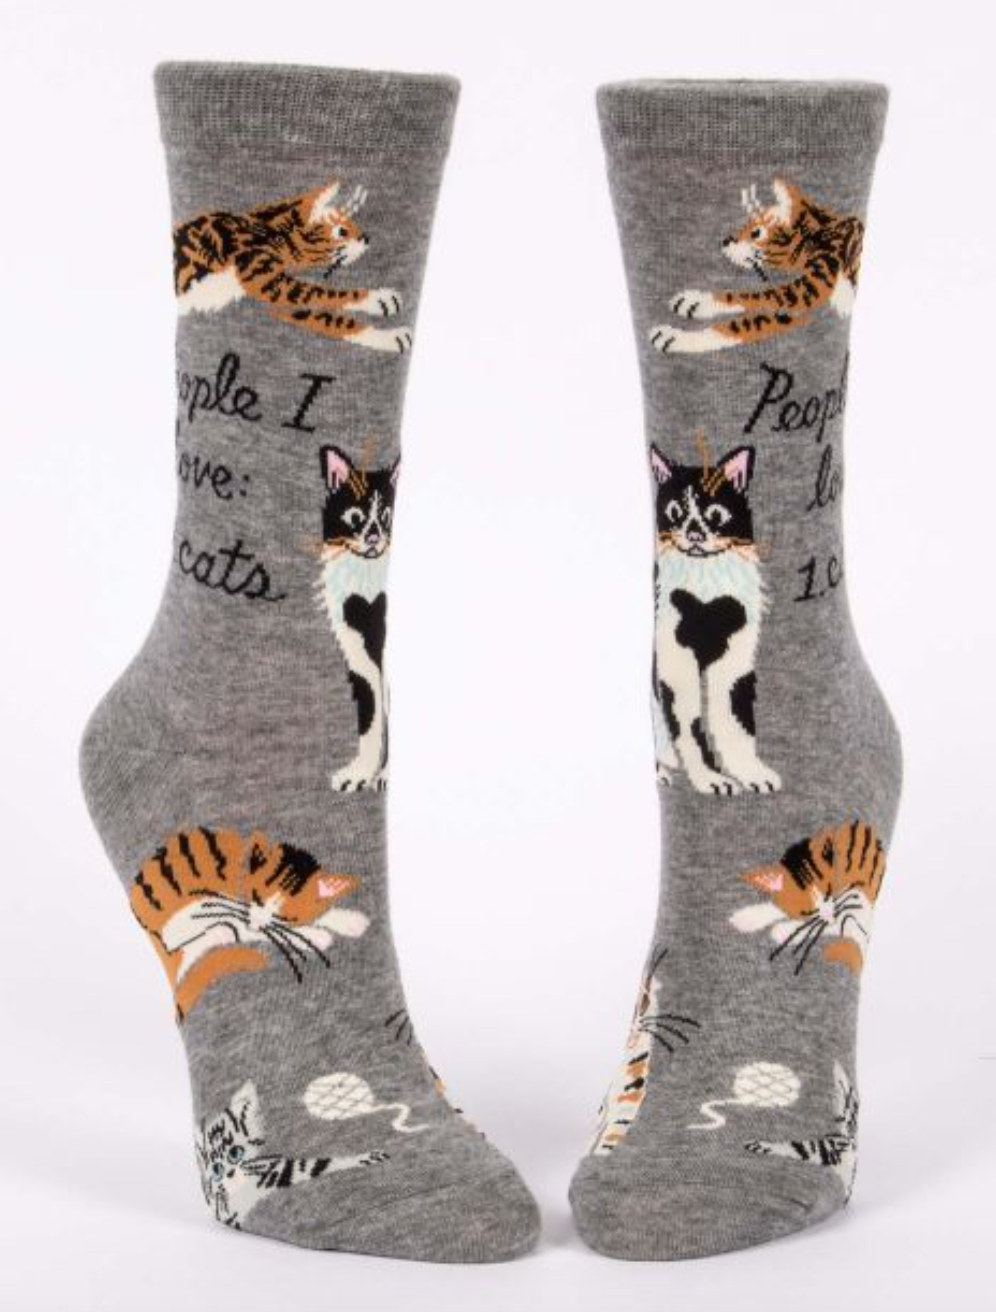 People I Love: Cats Socks - Women